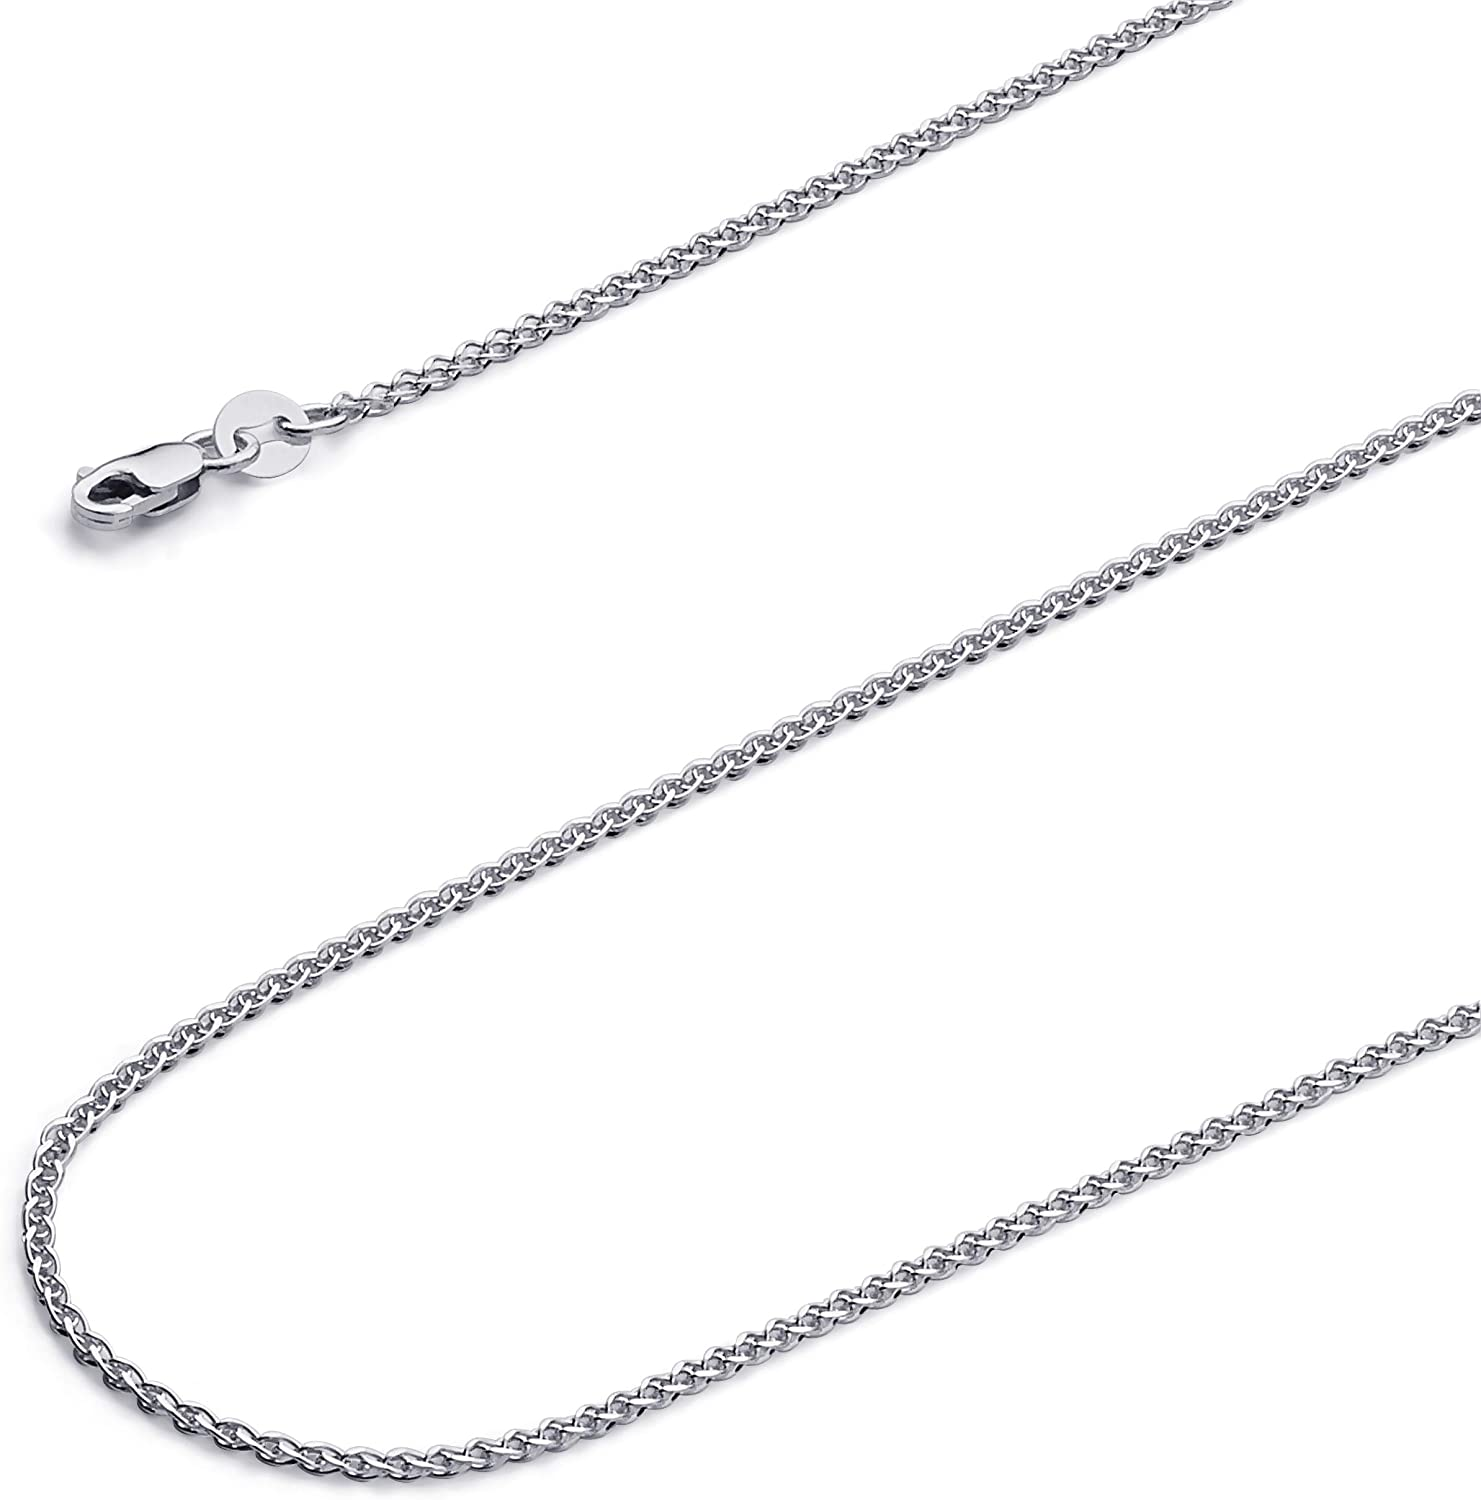 Wellingsale 14k Yellow OR White Gold Brilliant Solid 1.5mm Flat Open wheat Chain Necklace with Lobster Claw Clasp